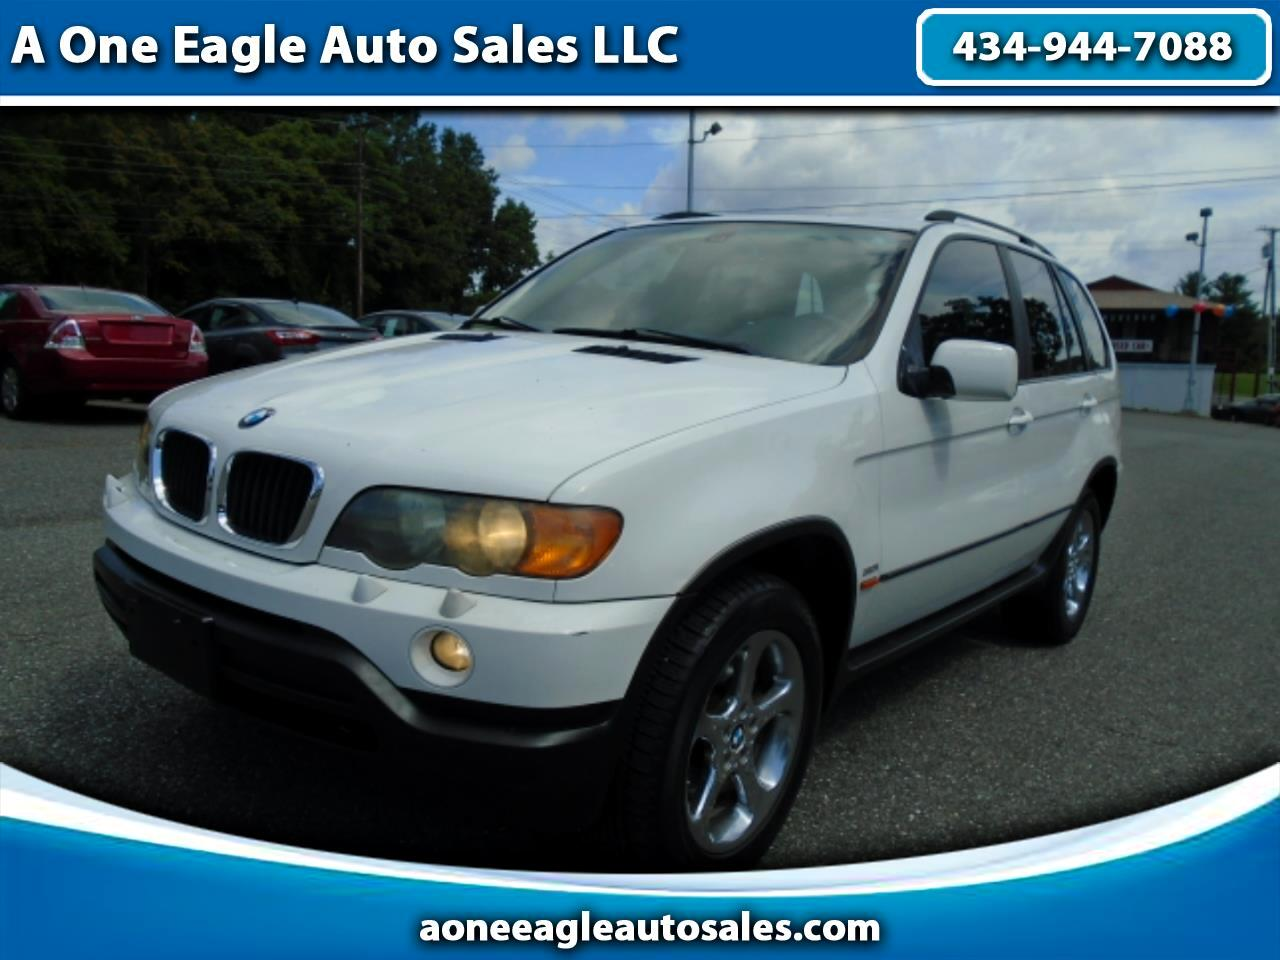 Eagle Auto Sales >> Used 2003 Bmw X5 3 0i For Sale In Lynchburg Va 24572 A One